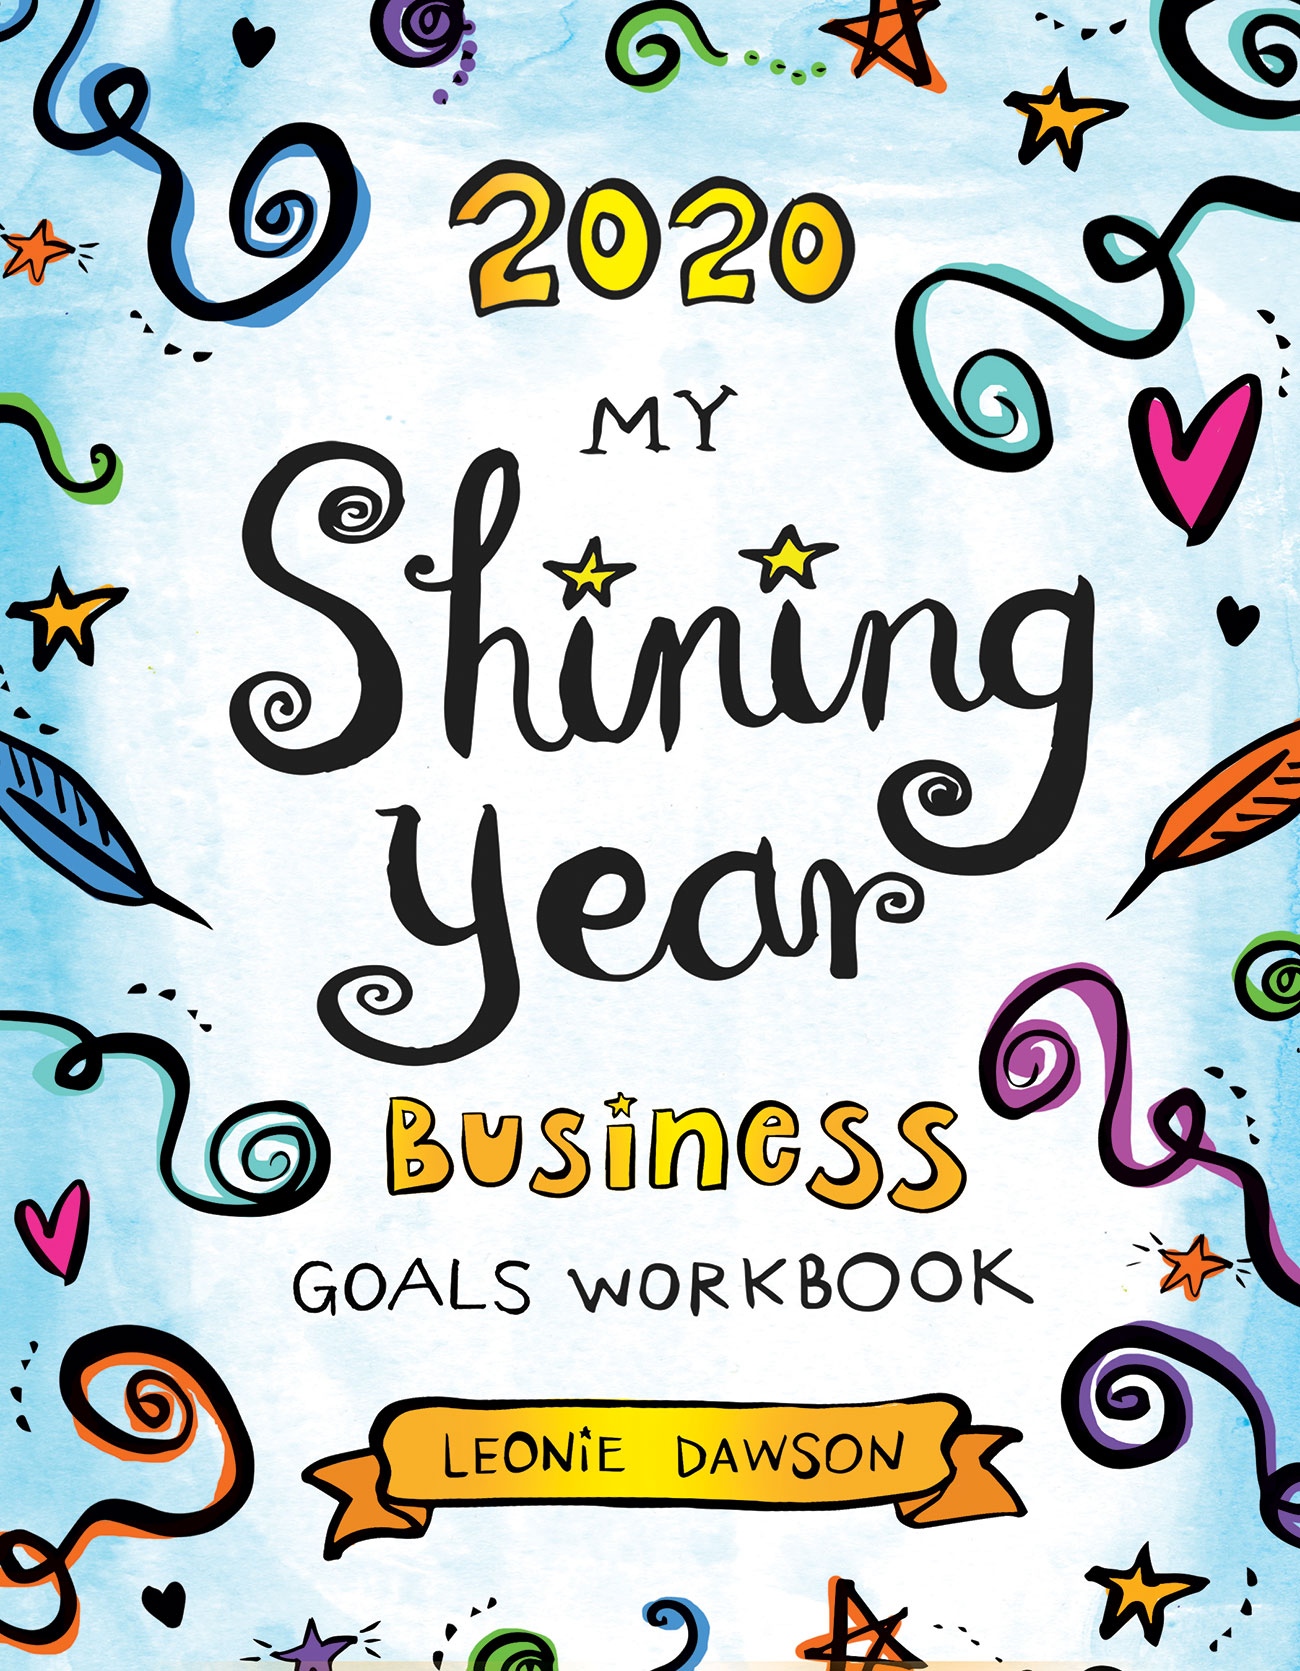 2020 My Shining Year Business Goals Workbook